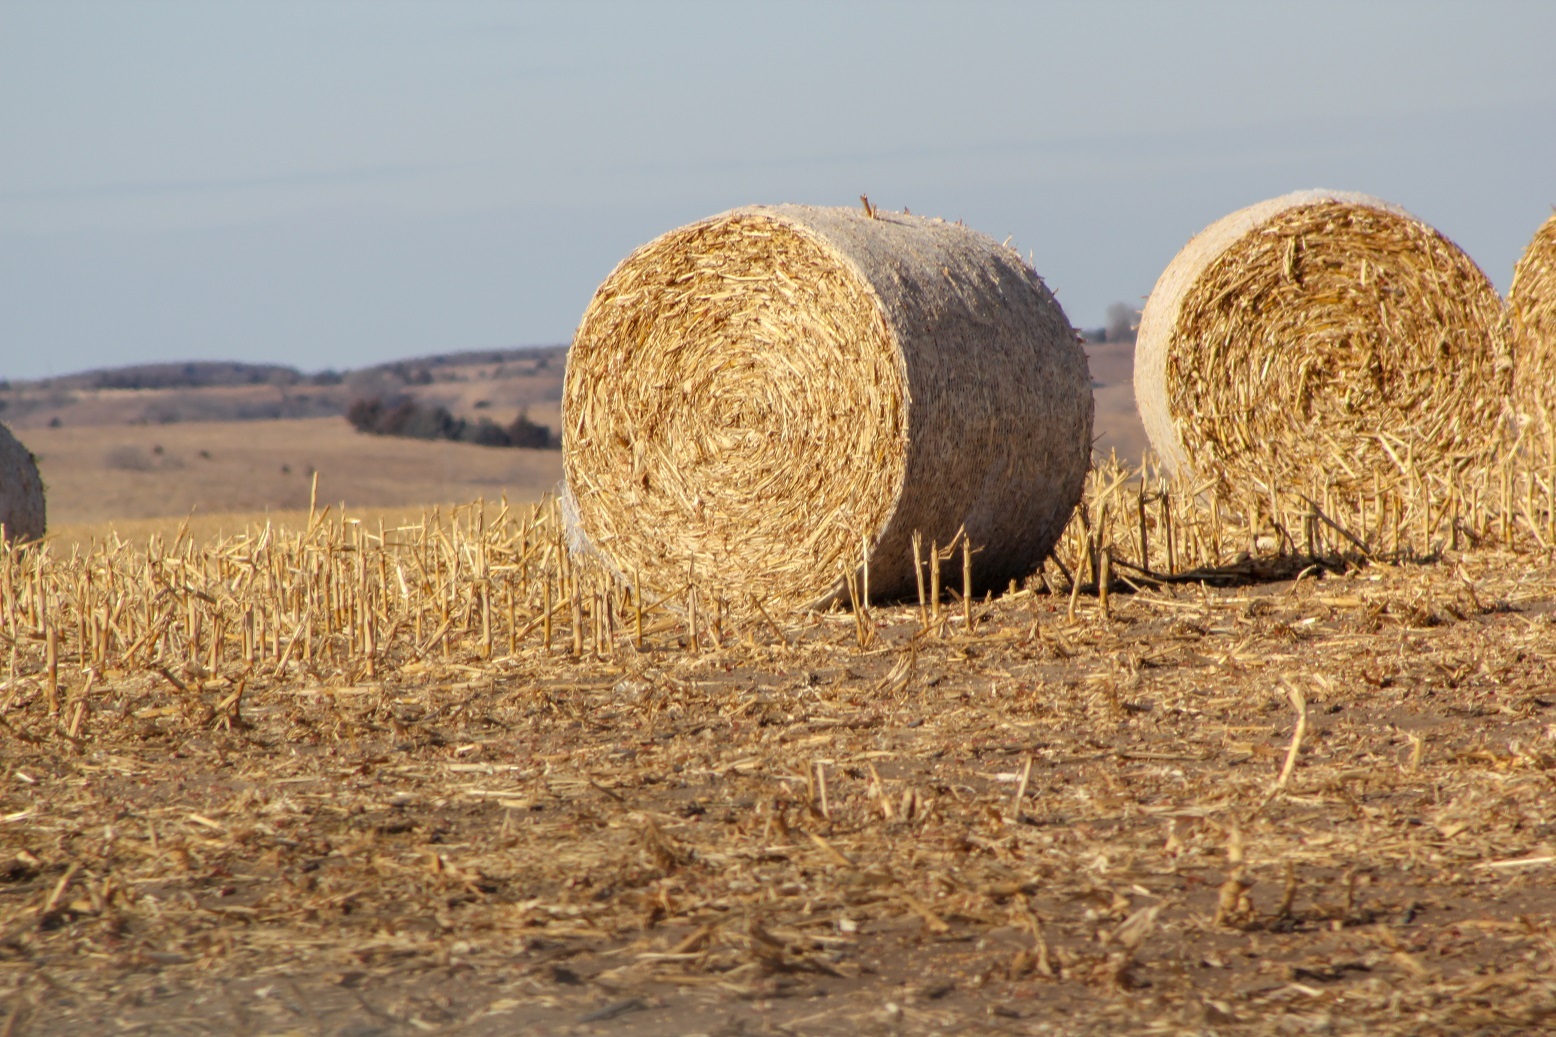 Cornstalk bales in field